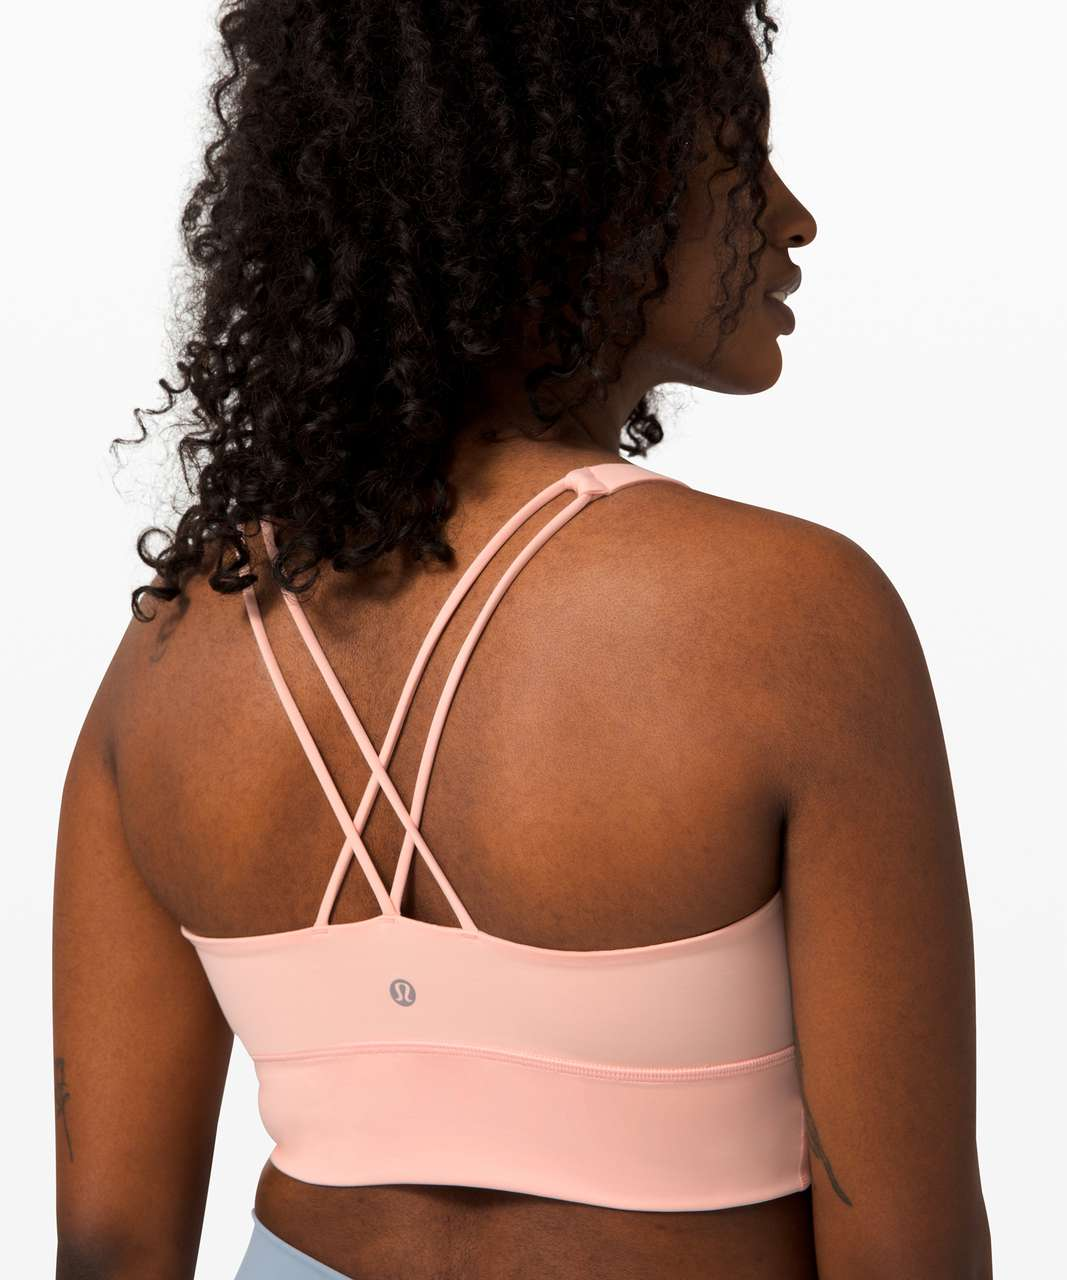 Lululemon Free To Be Bra Long Line *Light Support, A/B Cup (Online Only) - Ballet Slipper